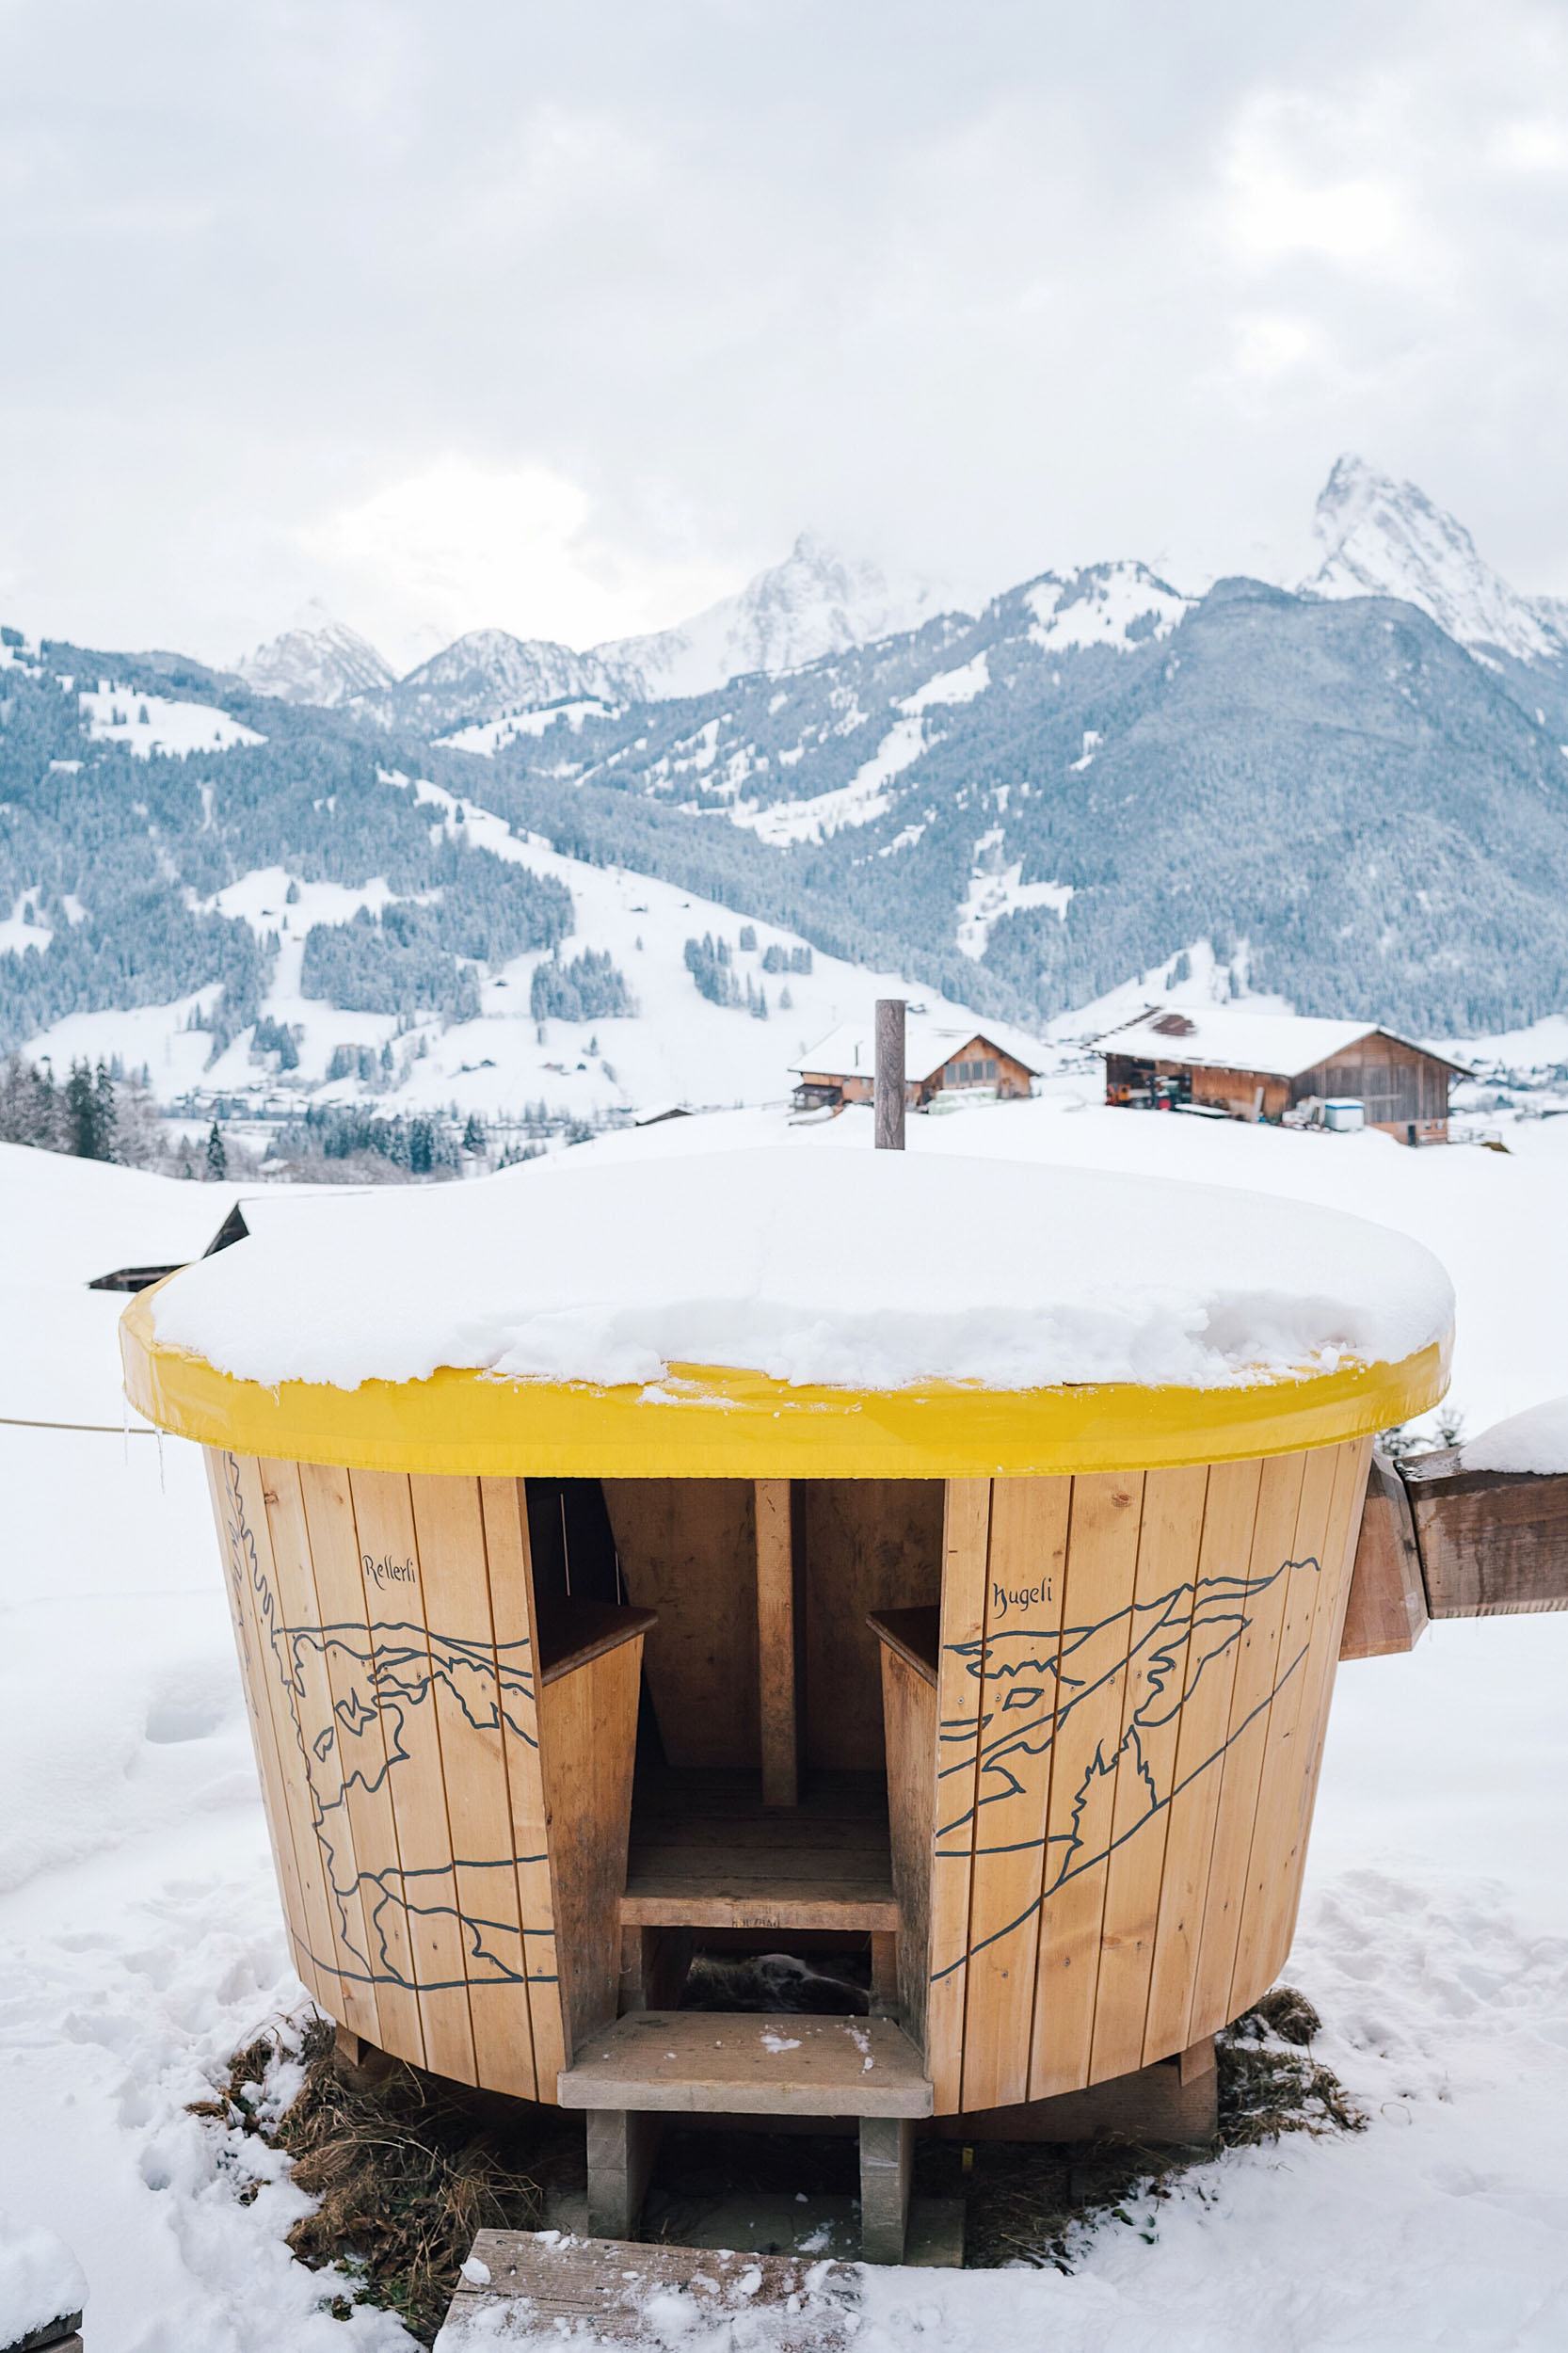 On your fondue hike in Gstaad you will dine inside a large, wooden seating area shaped like, you guessed it, a fondue pot!